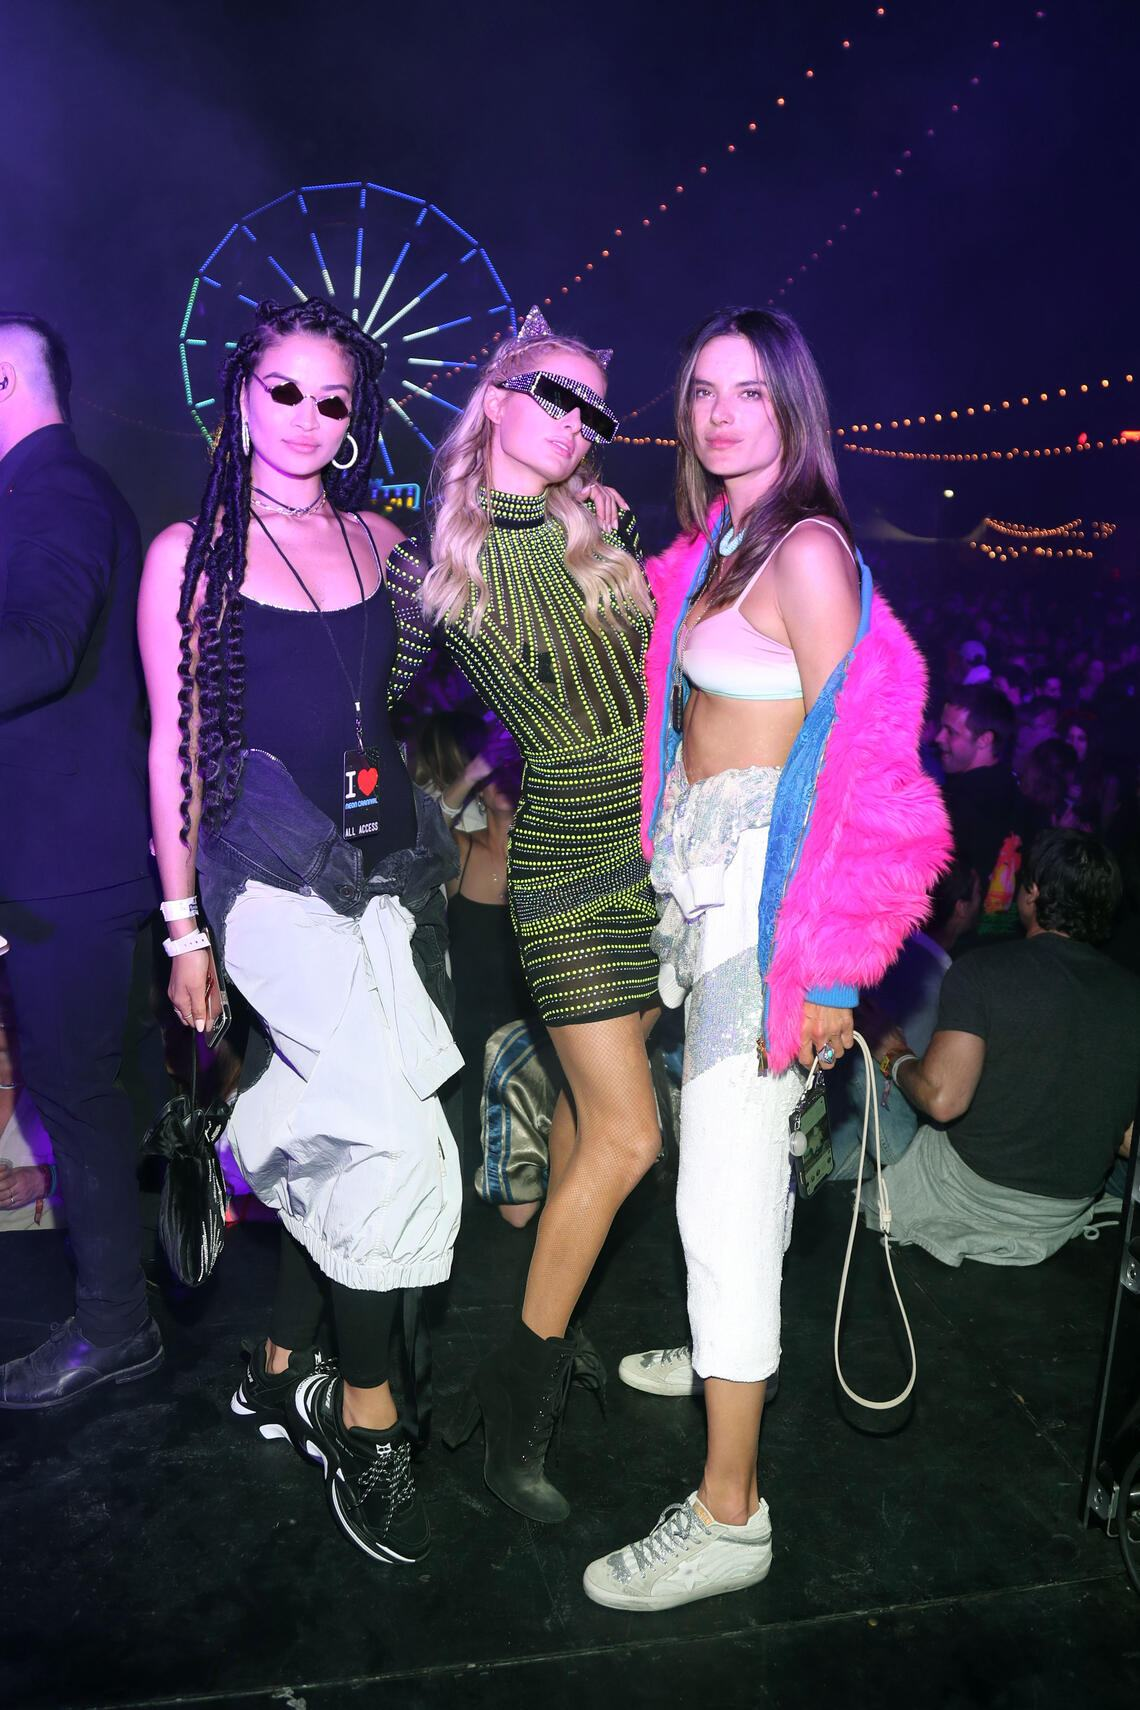 THERMAL, CALIFORNIA - APRIL 13: _____, Paris Hilton and Alessandra Ambrosio attend the Levi's Brand Presents Neon Carnival with Bondi Sands and POKÉMON: Detective Pikachu on April 13, 2019 in Thermal, California. (Photo by Cassidy Sparrow/Getty Images for Neon Carnival)